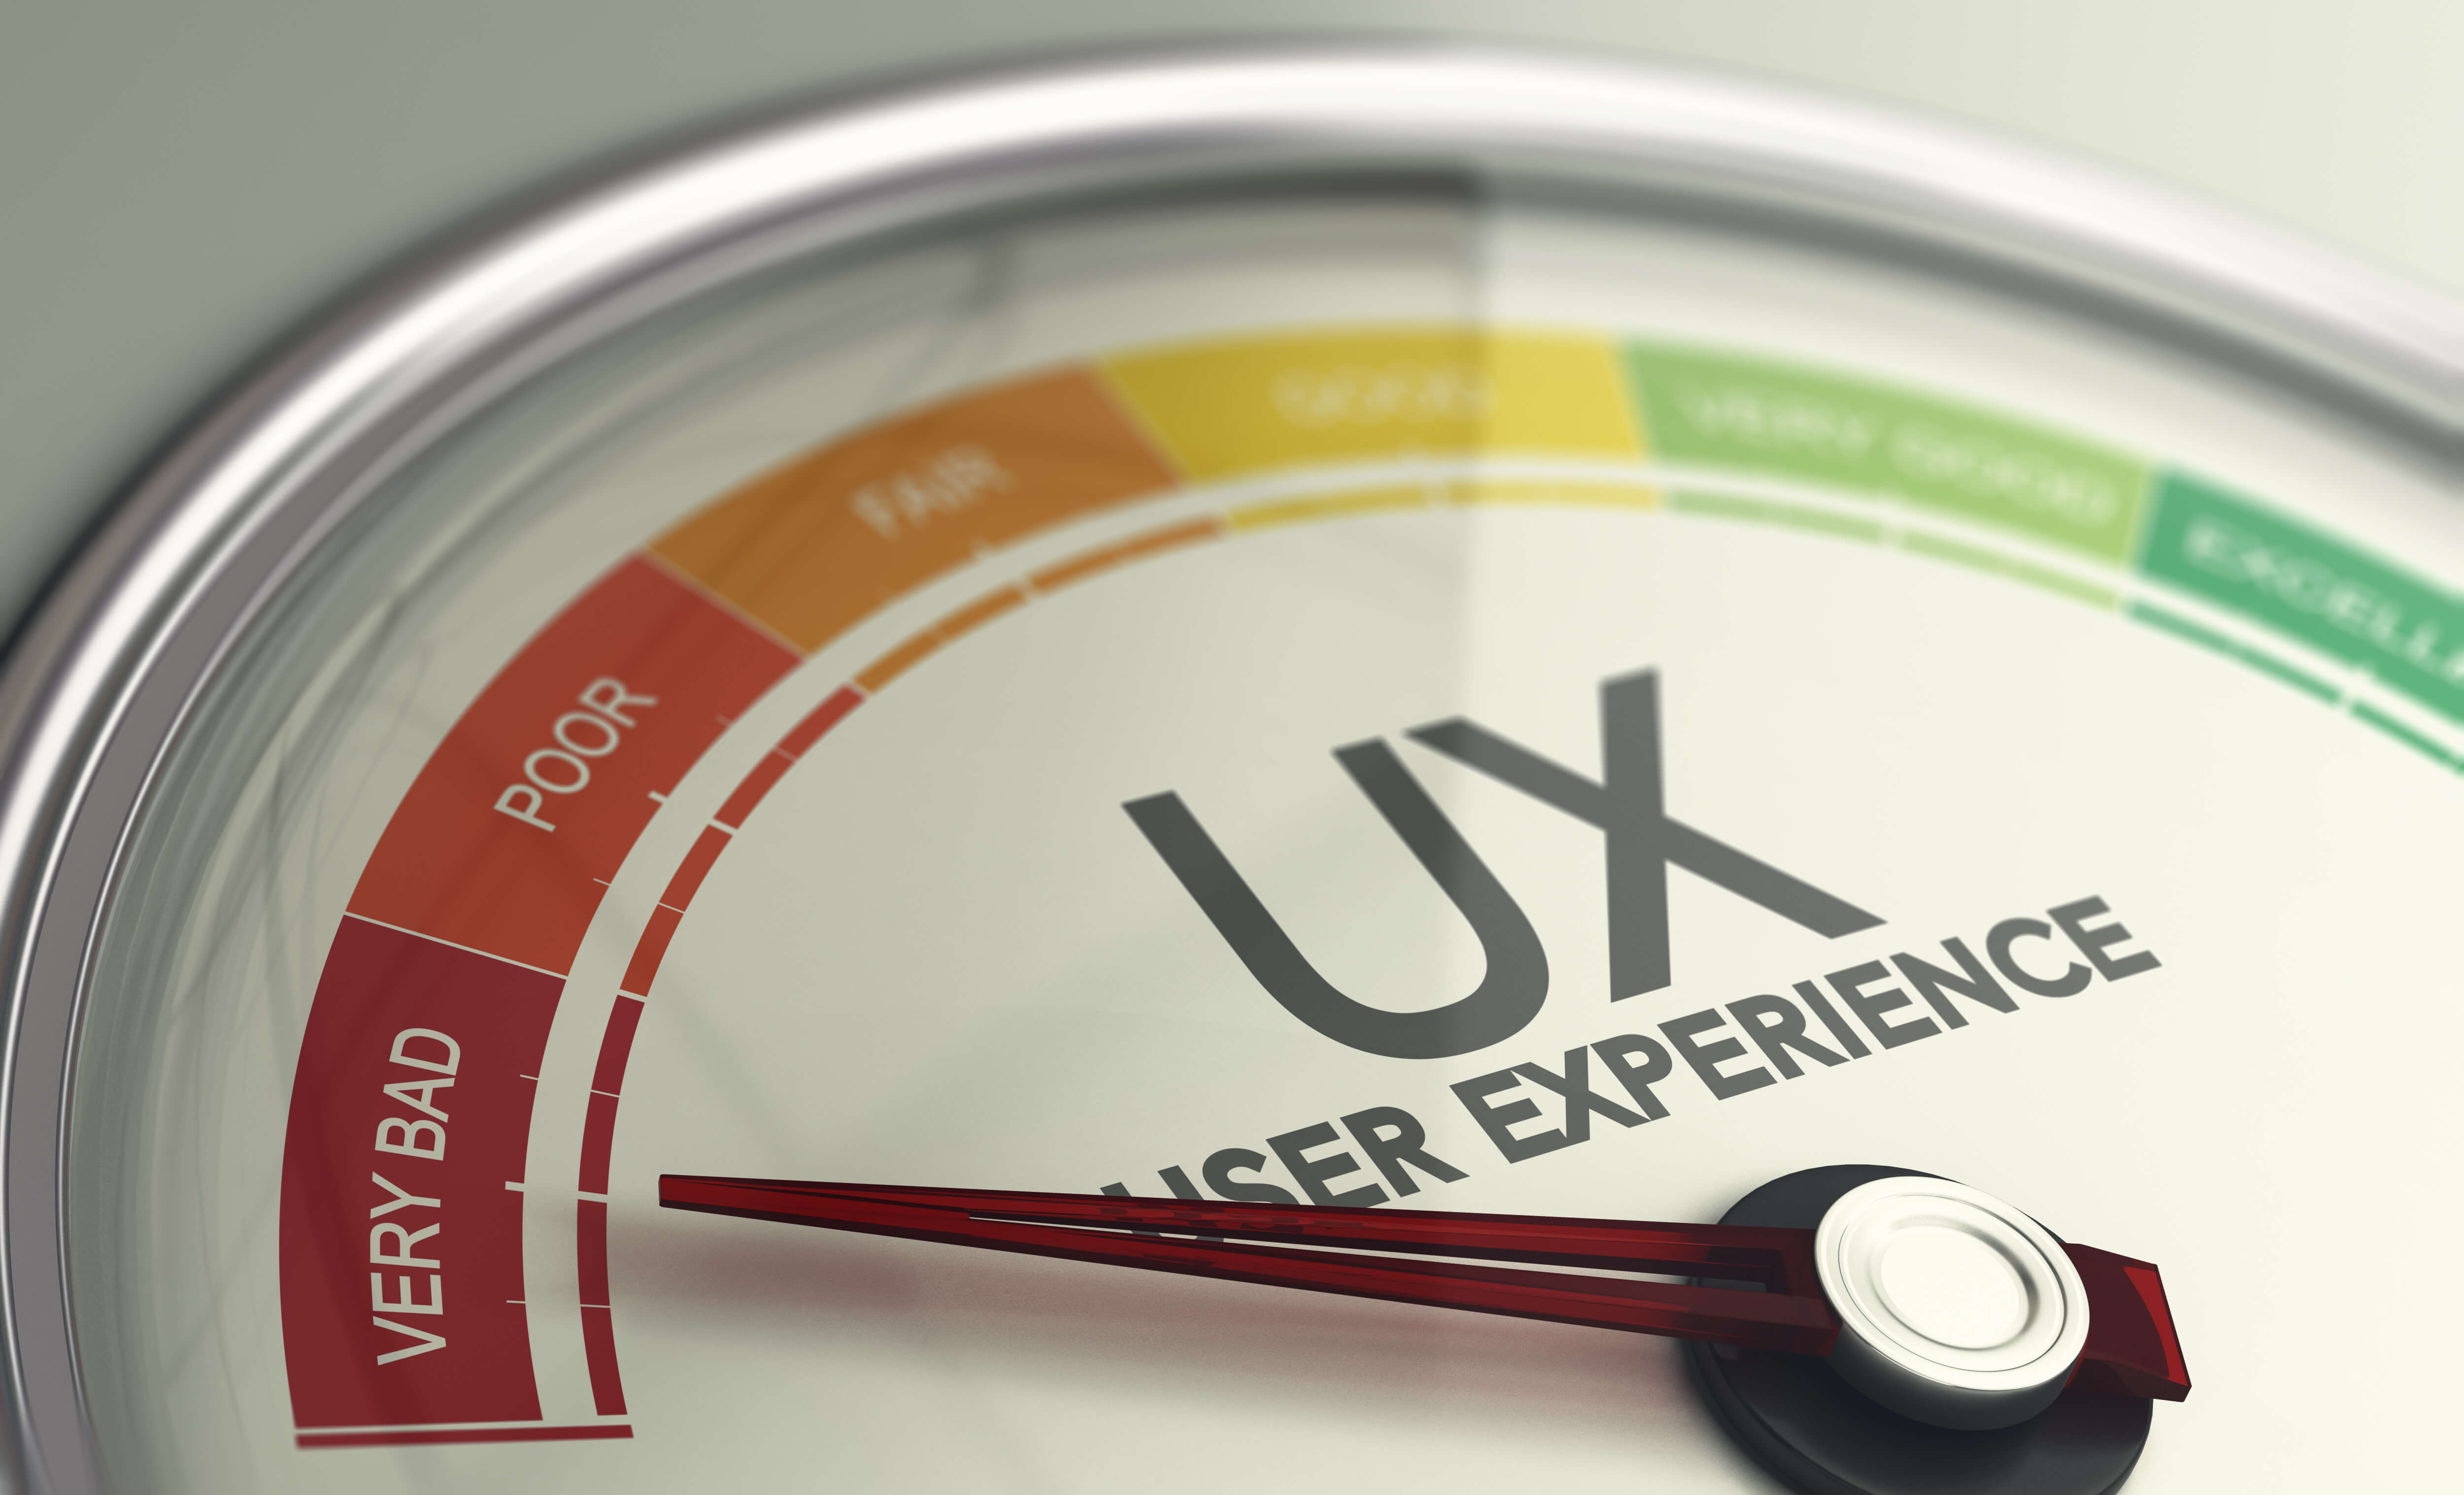 A bad user experience will hurt your conversion rates